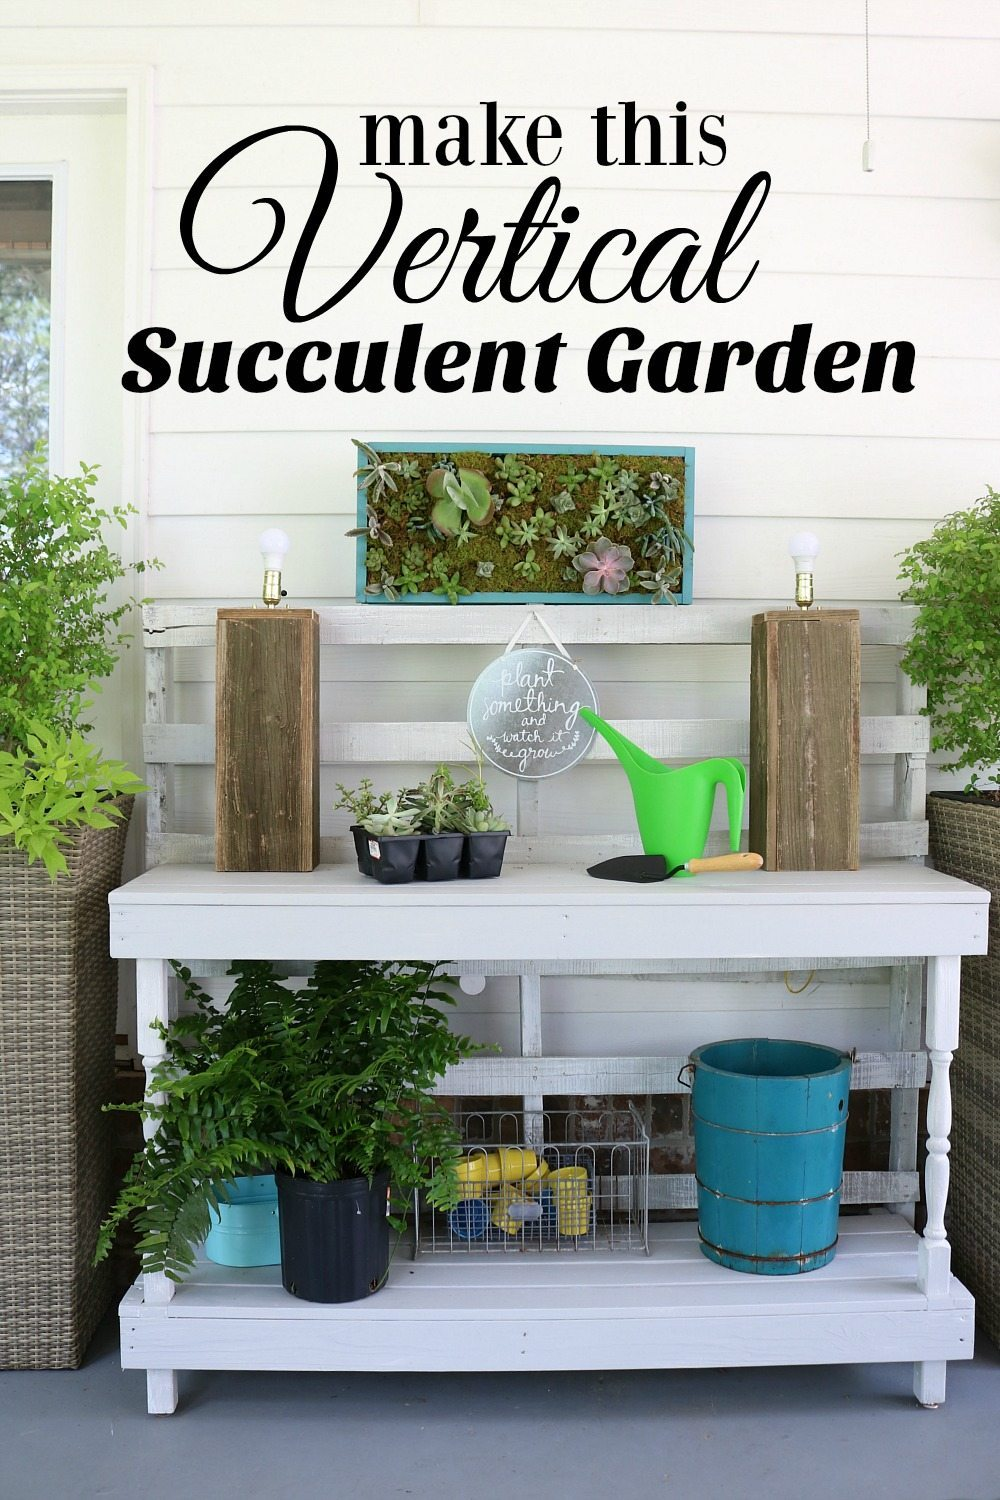 Make this vertical succulent garden